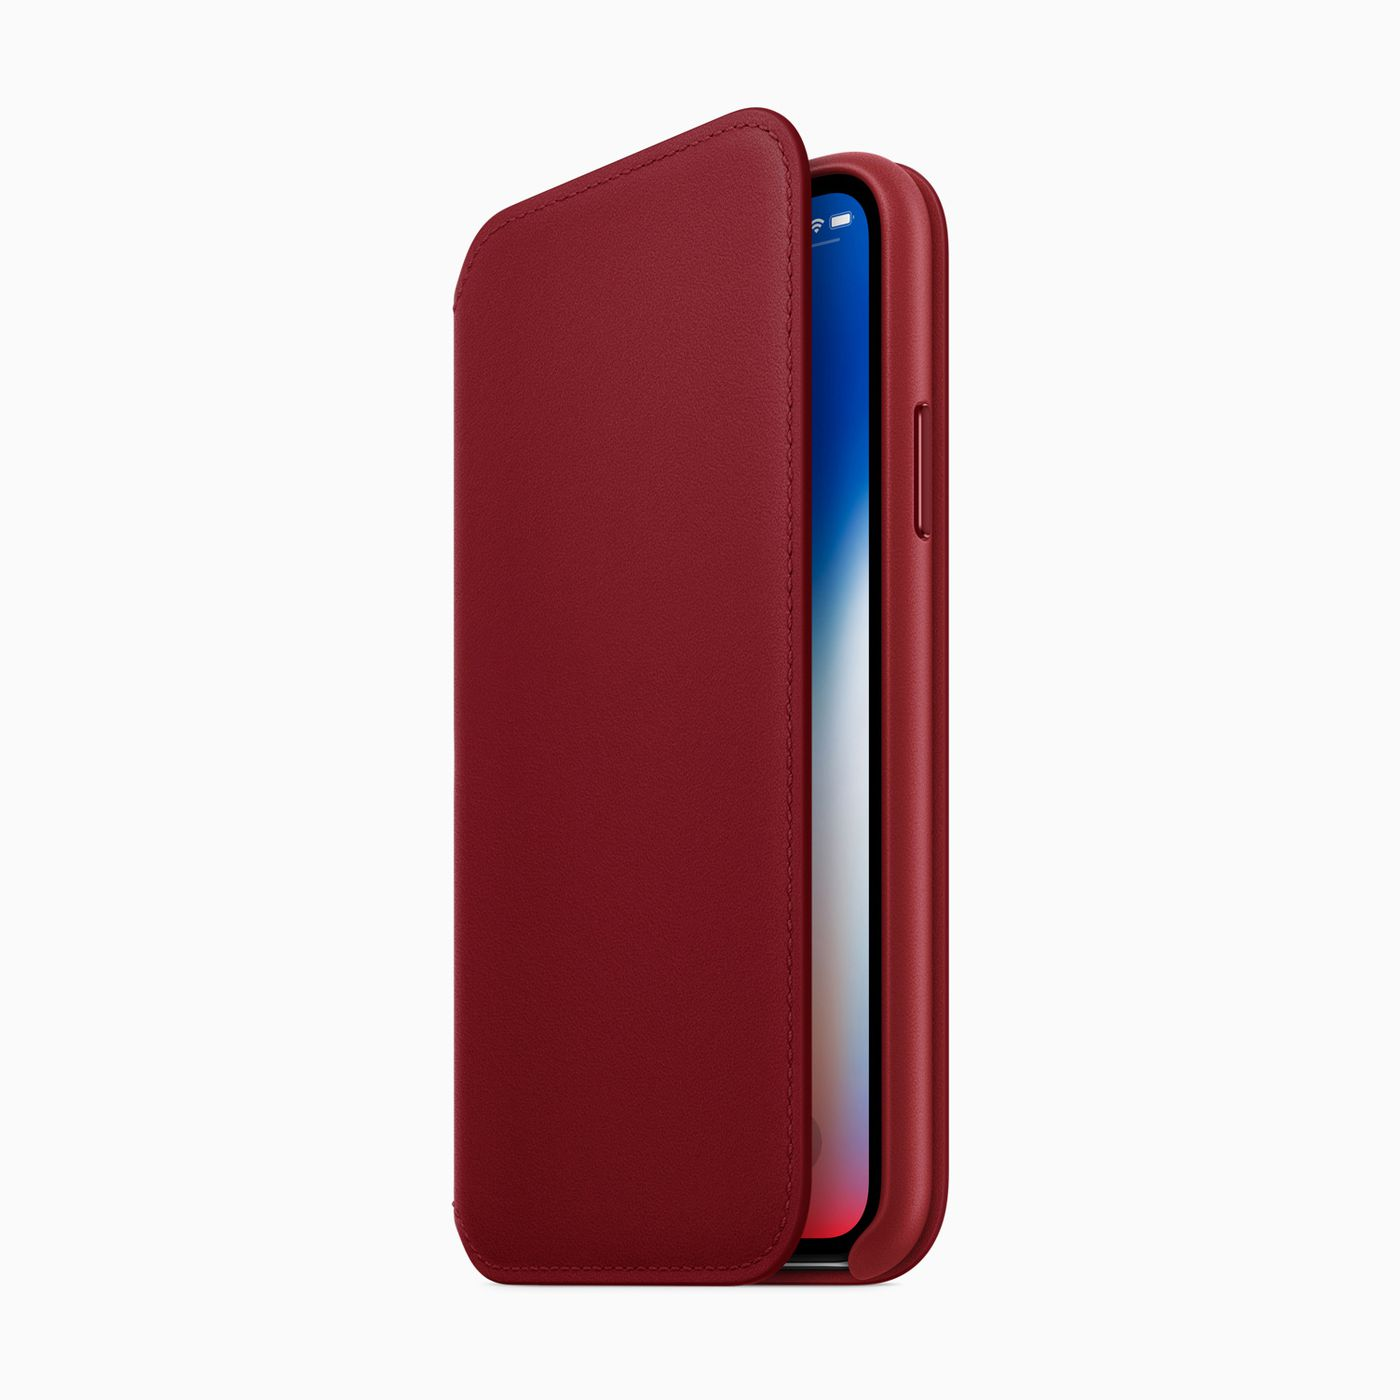 huge selection of 16062 56ef6 The iPhone X gets a RED leather folio - The Verge